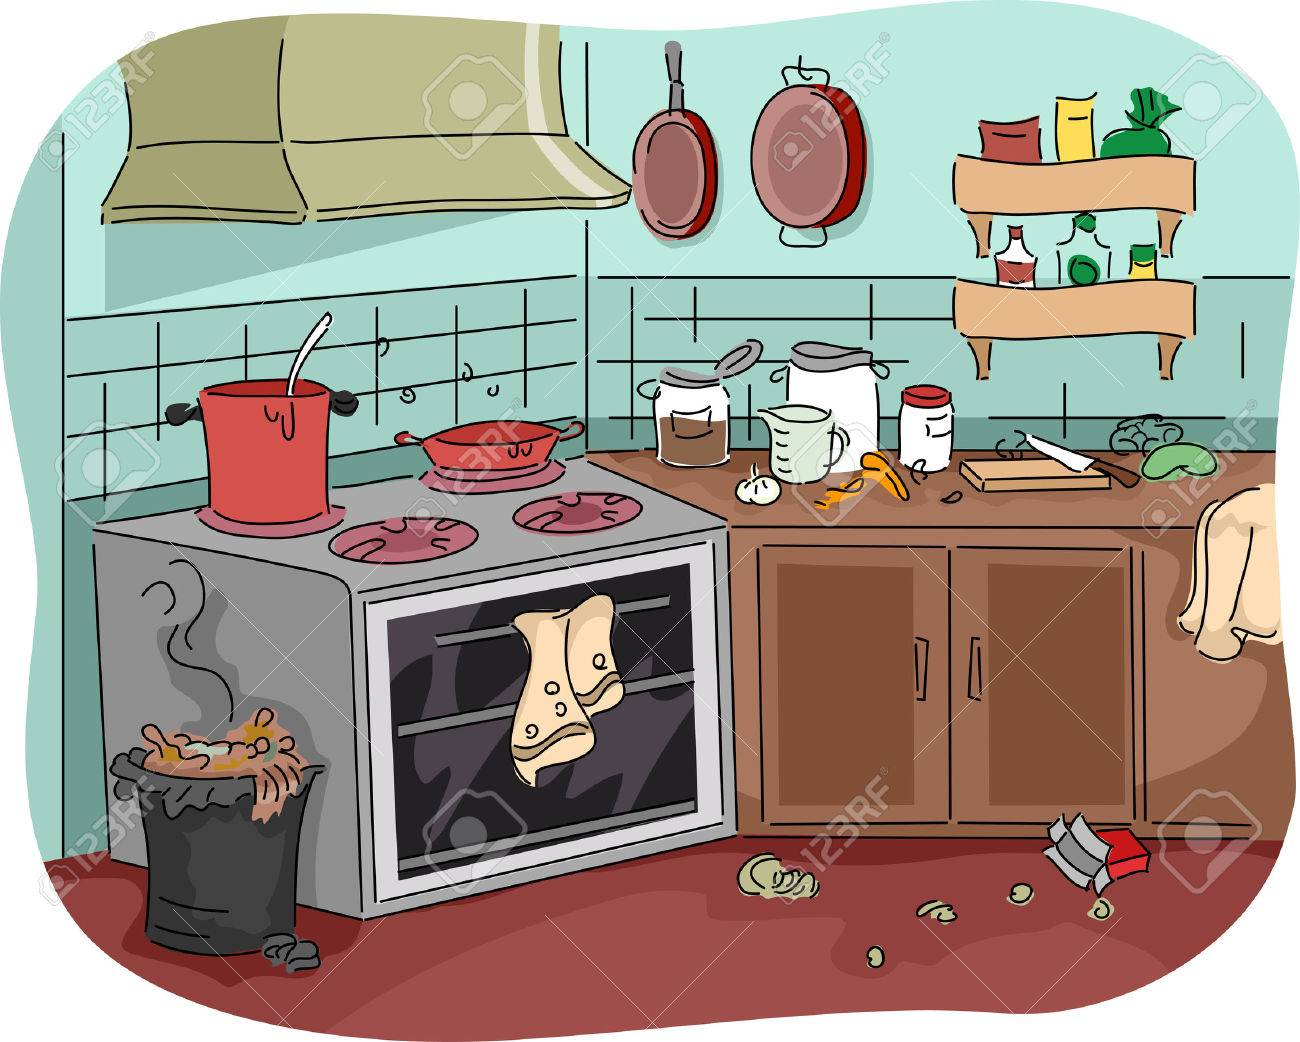 Illustration illustration of a dirty kitchen teeming with thrash